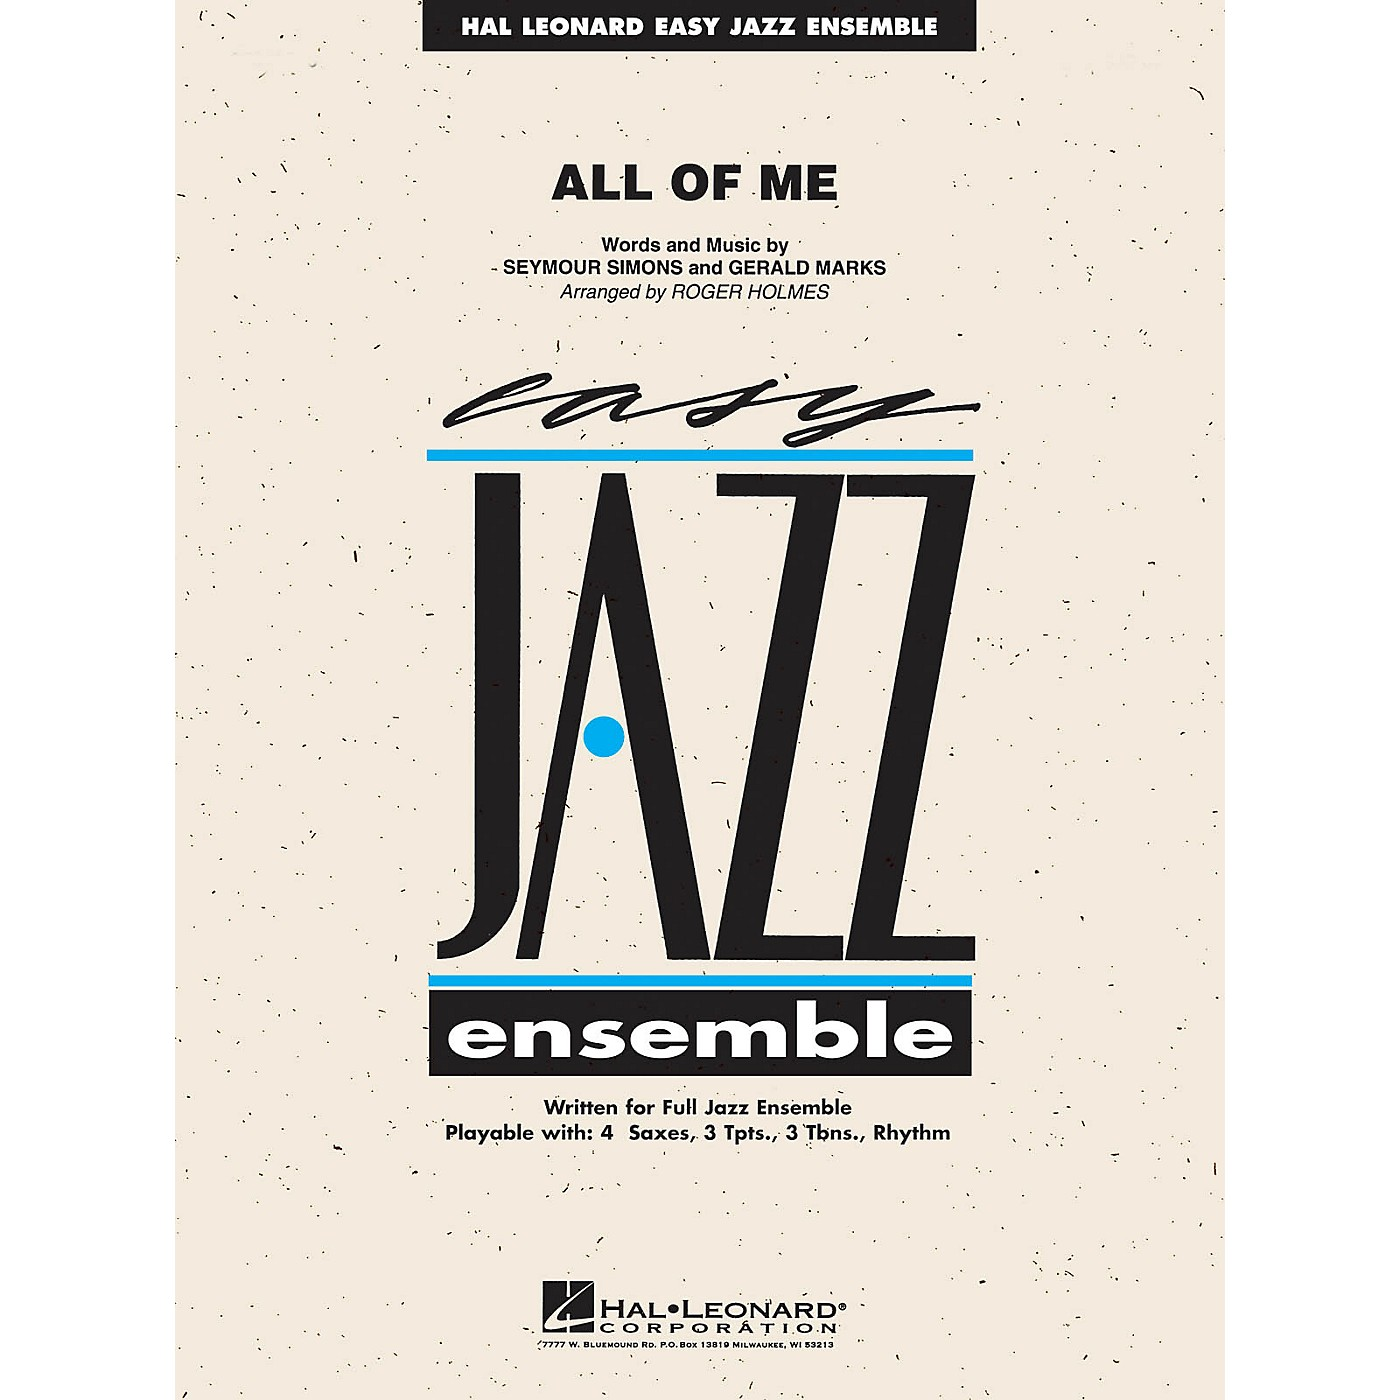 Hal Leonard All of Me Jazz Band Level 2 Arranged by R Holmes thumbnail